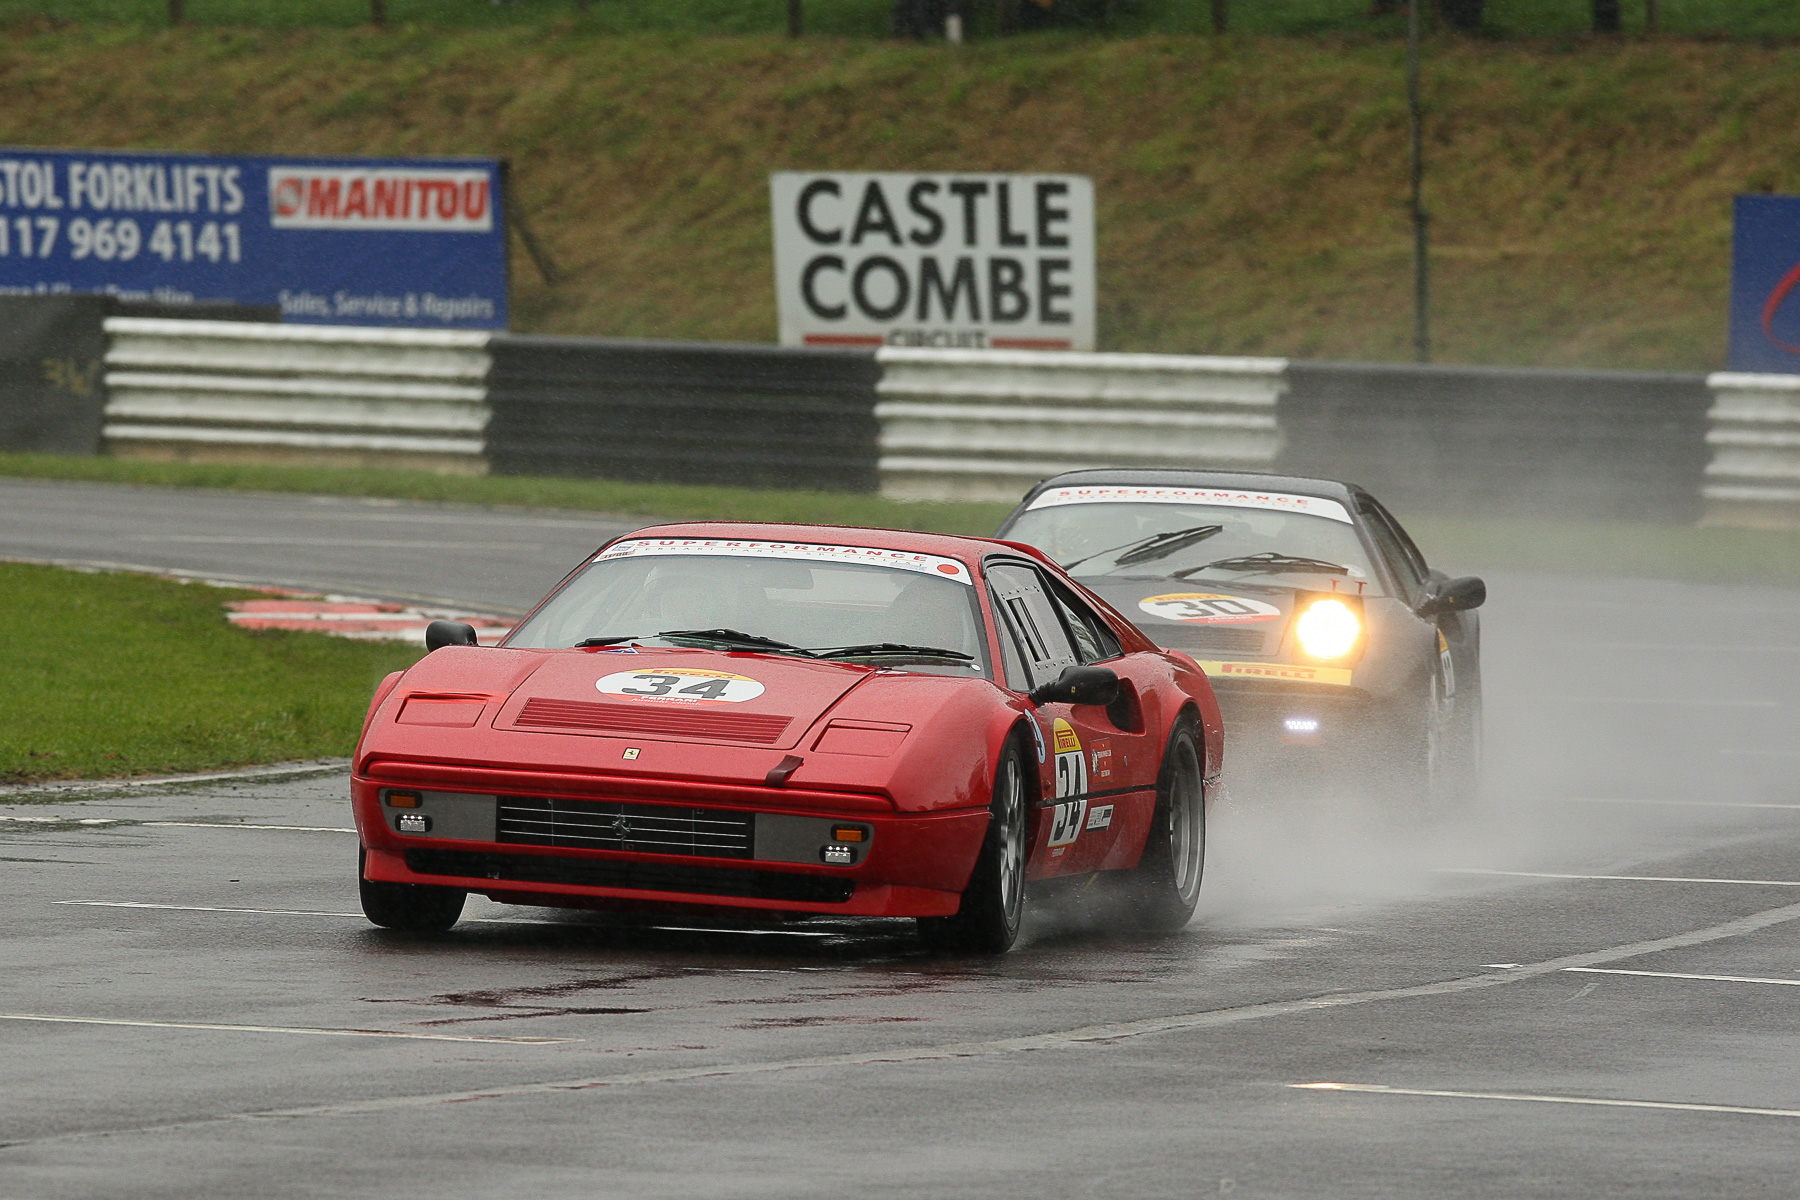 Castle Combe Sports Racing Car Series